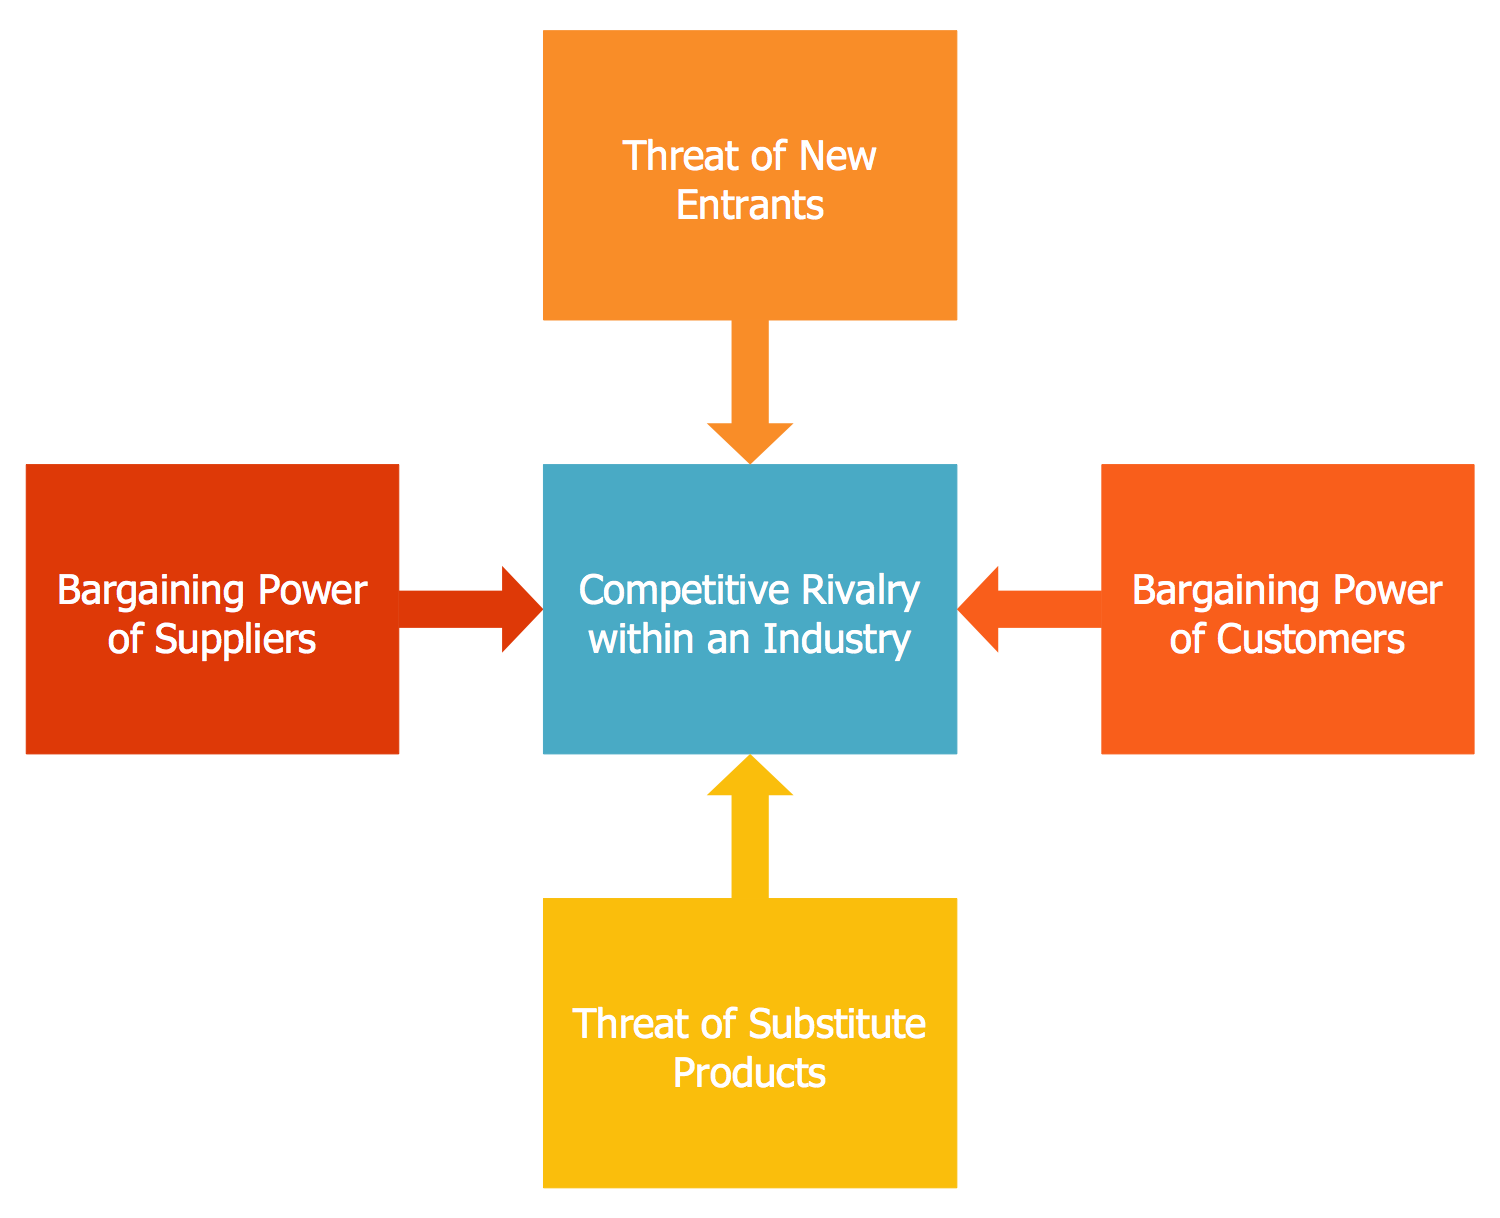 power of suppliers hotel According to porter's five forces analysis, suppliers use bargaining power to raise prices or reduce product quality, and affect overall competition of industry.